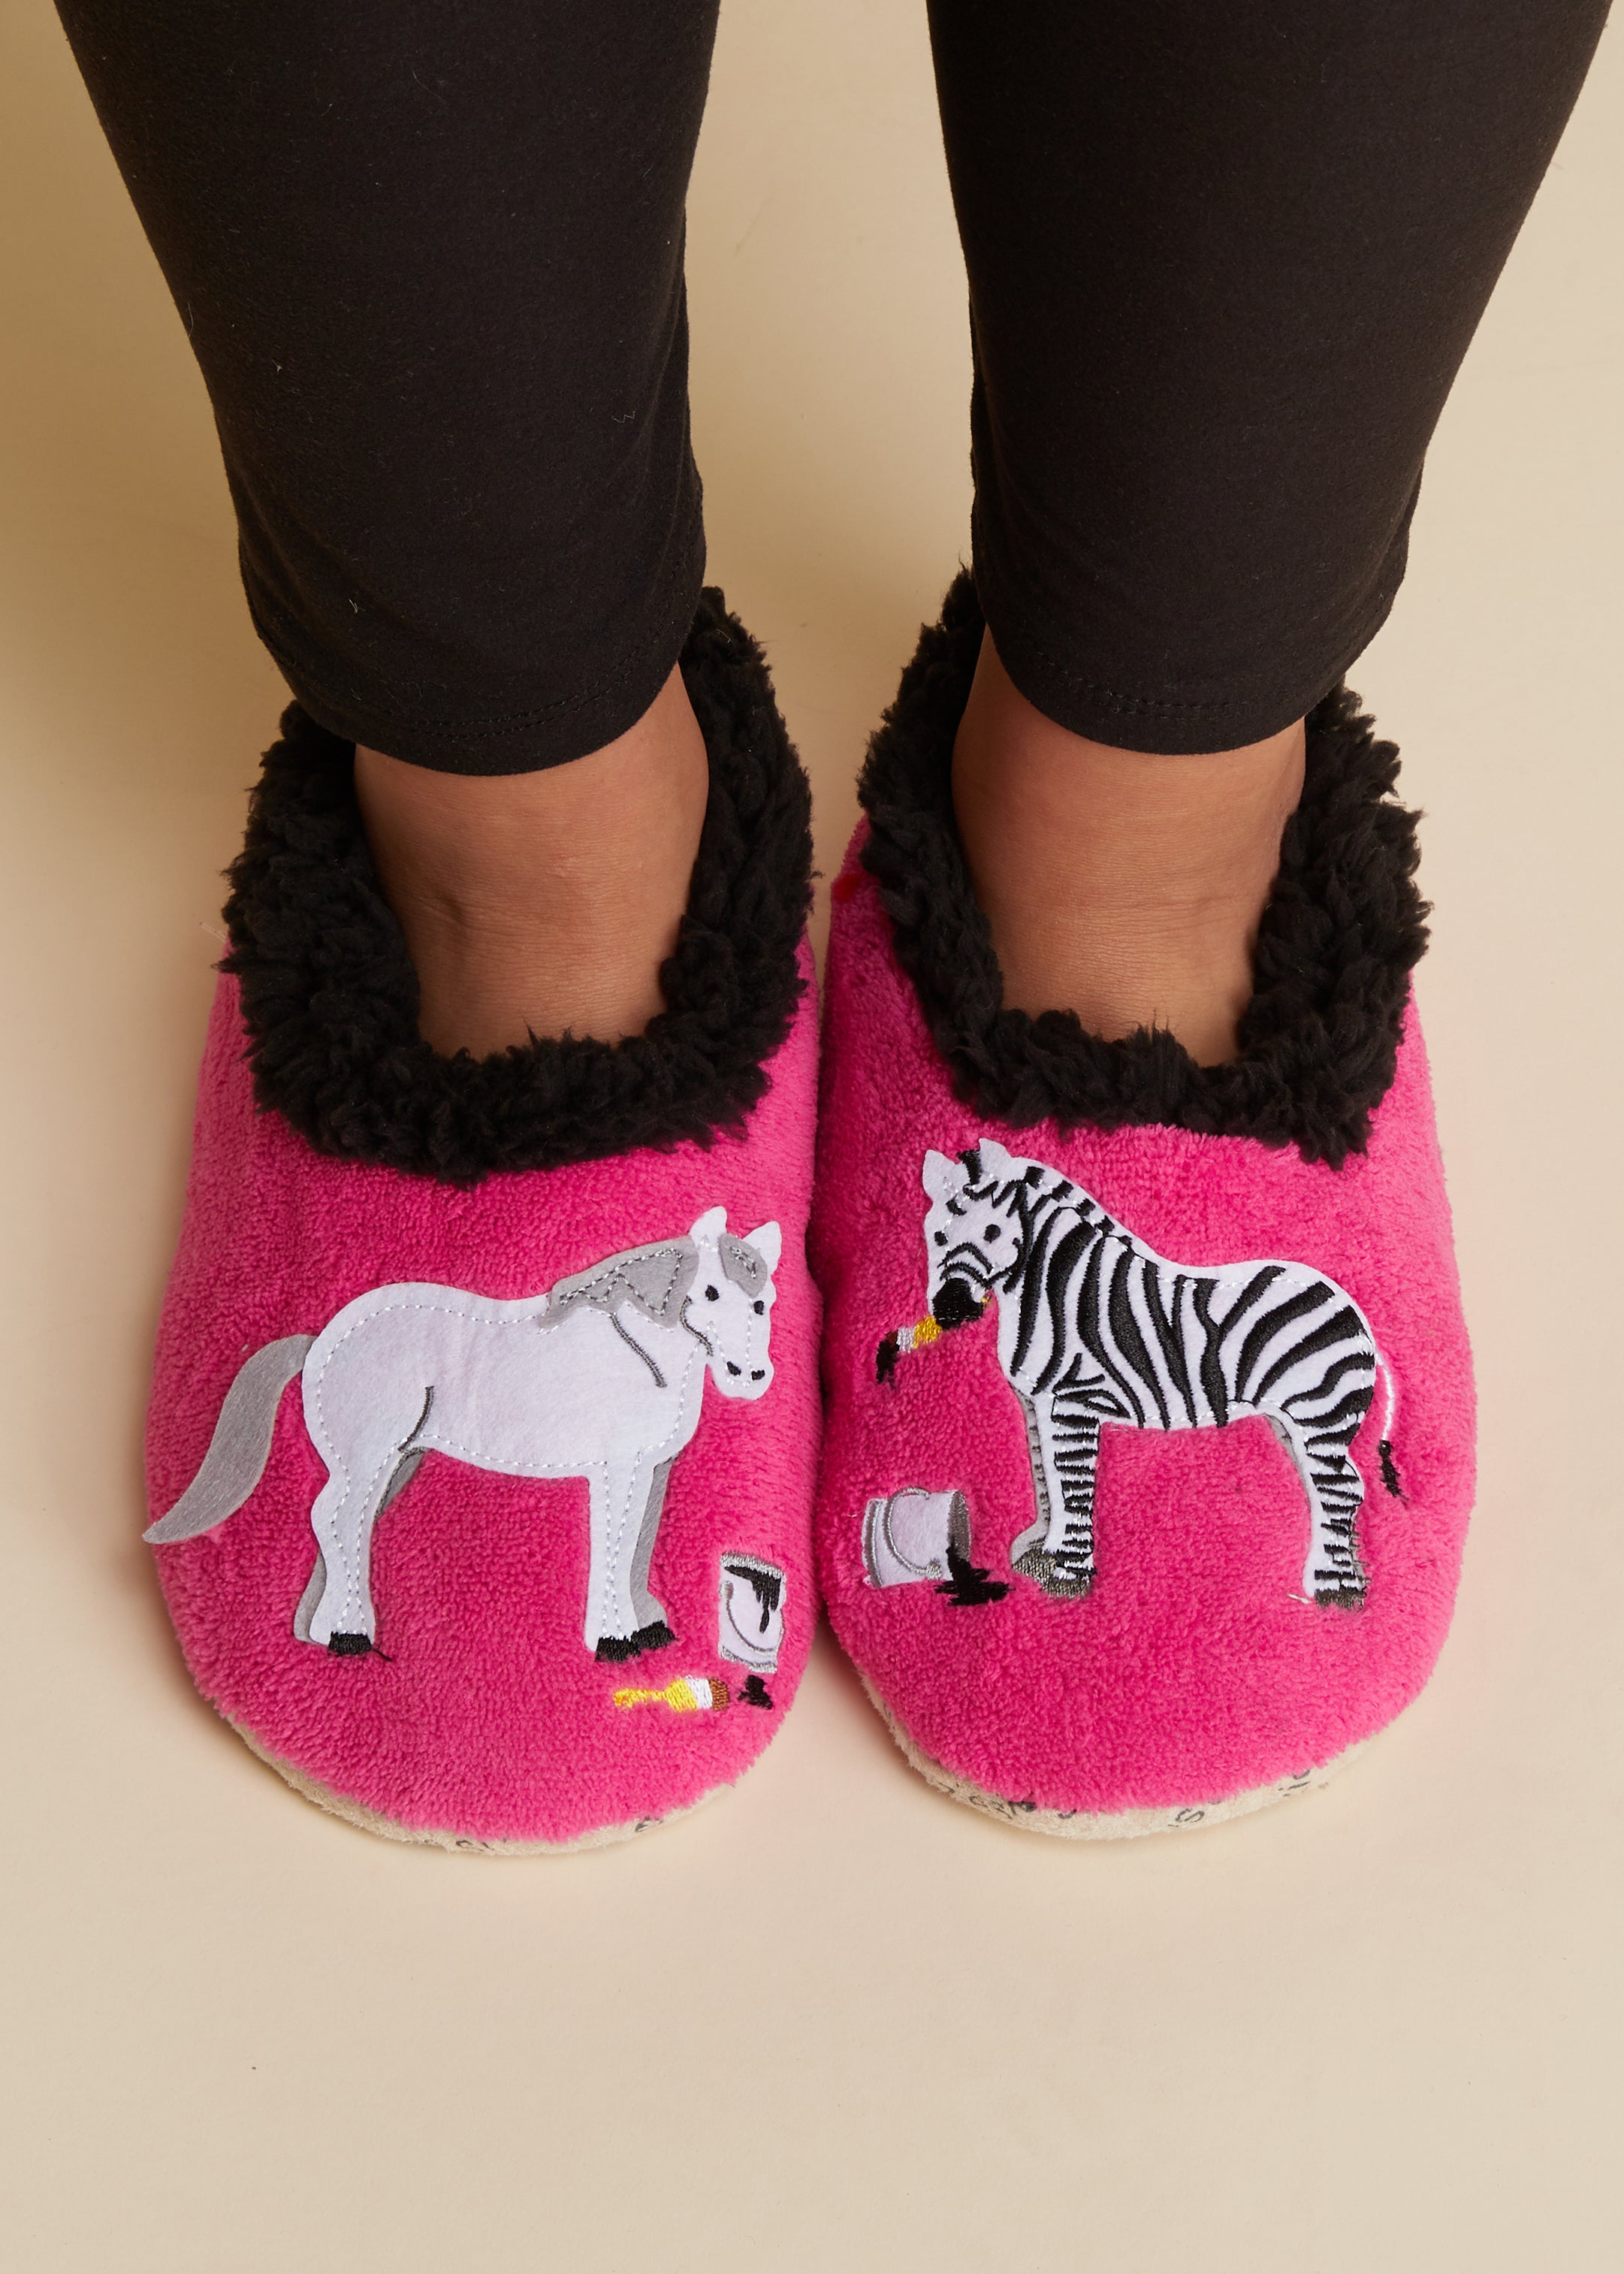 Zebra & Horse Snoozies Slippers